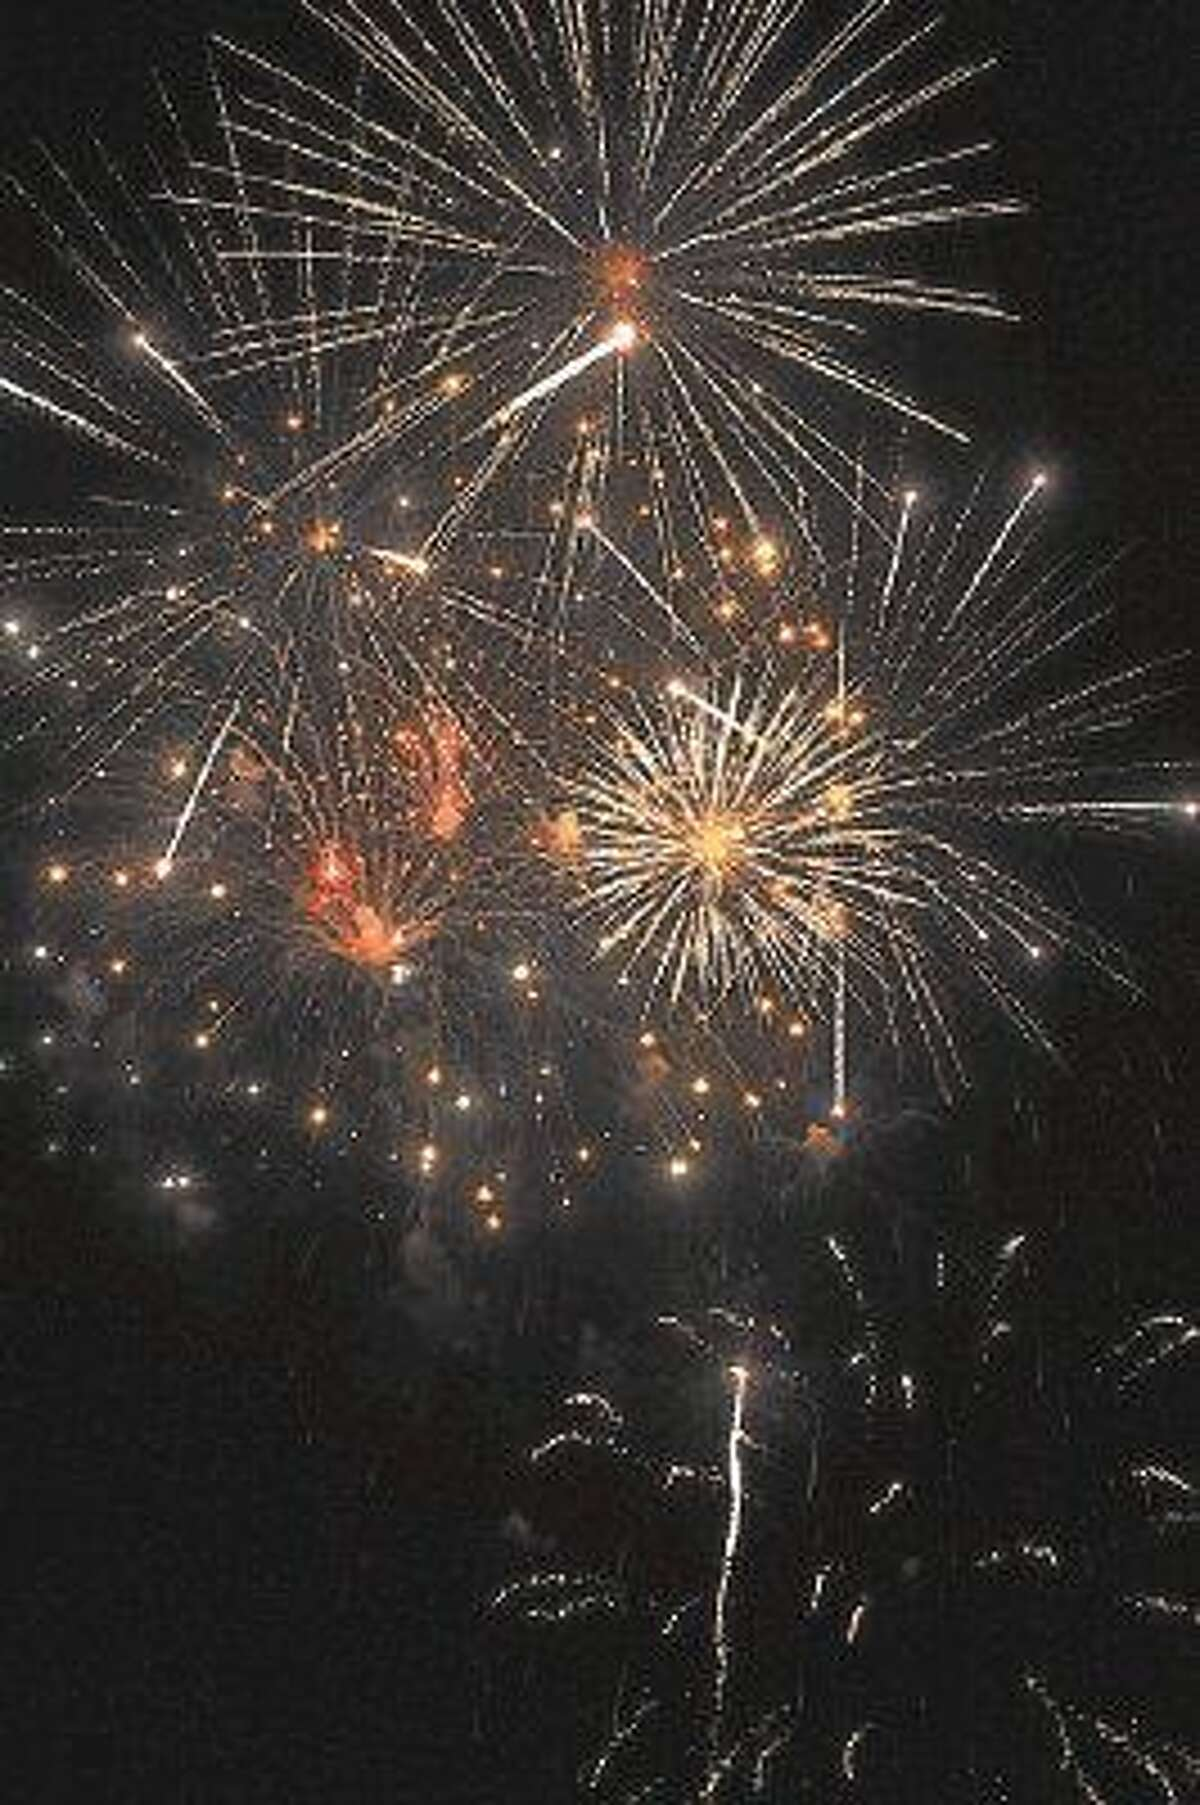 Fireworks are synonymous with the Fourth of July. Fireworks are fun and beautiful, but can also be very dangerous.